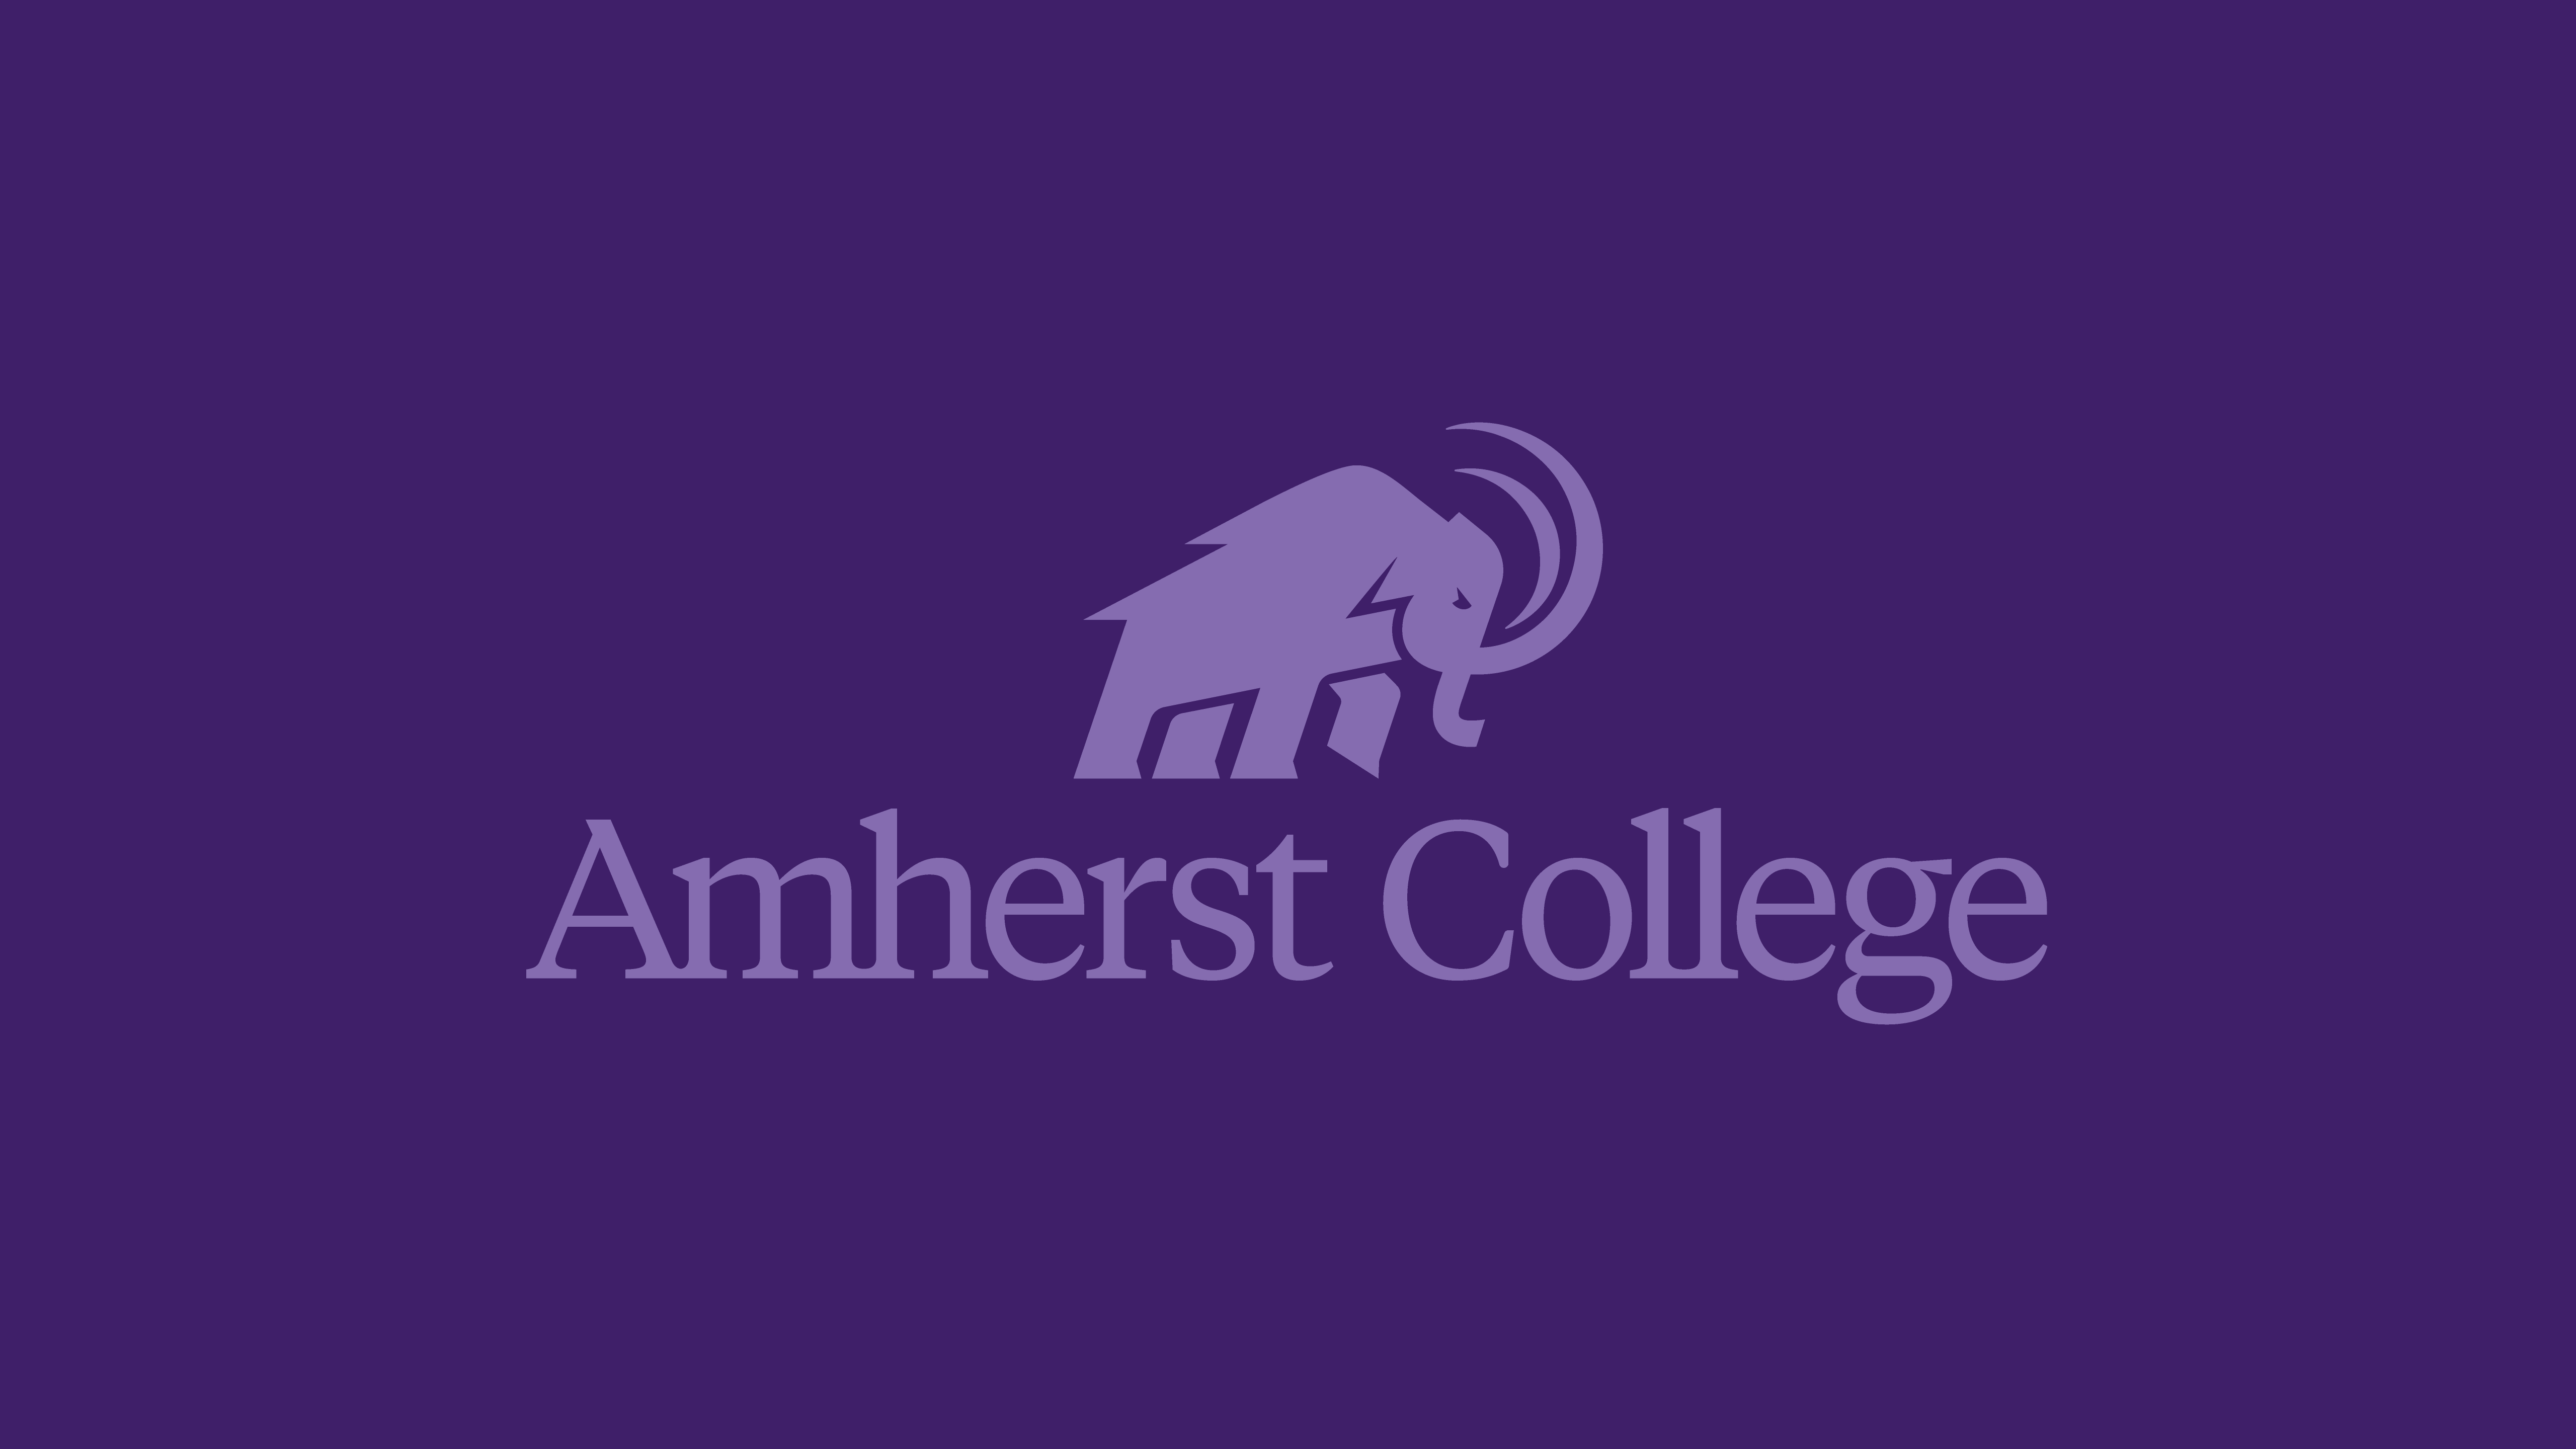 Light purple mammoth logo and Amherst College wordmark on dark purple background